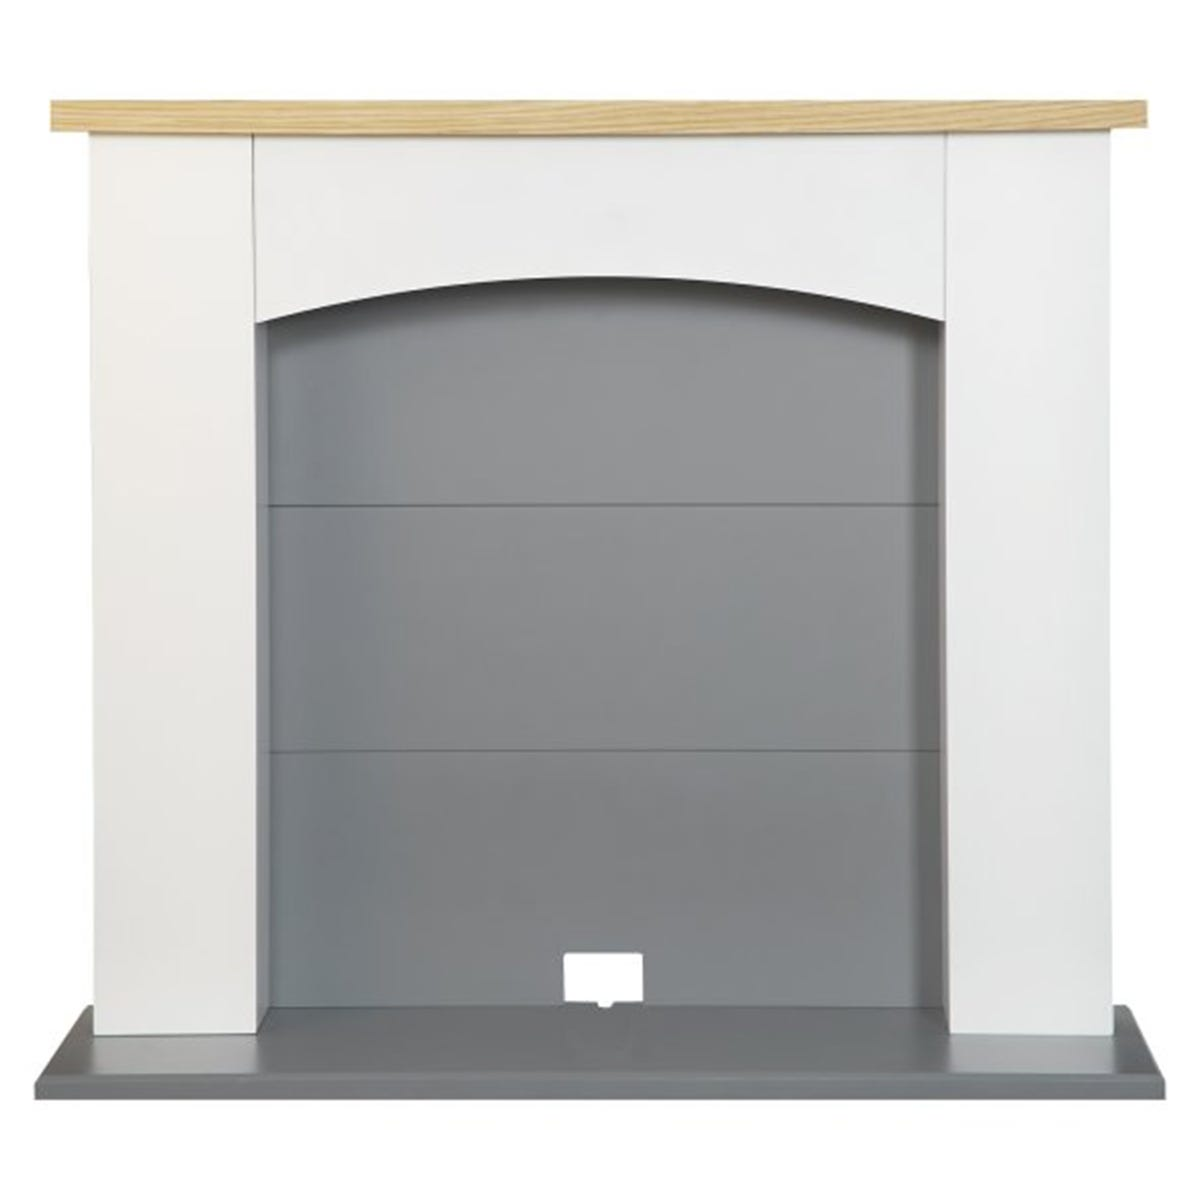 Adam Huxley Electric Stove Fireplace in Pure White & Grey 39 Inch